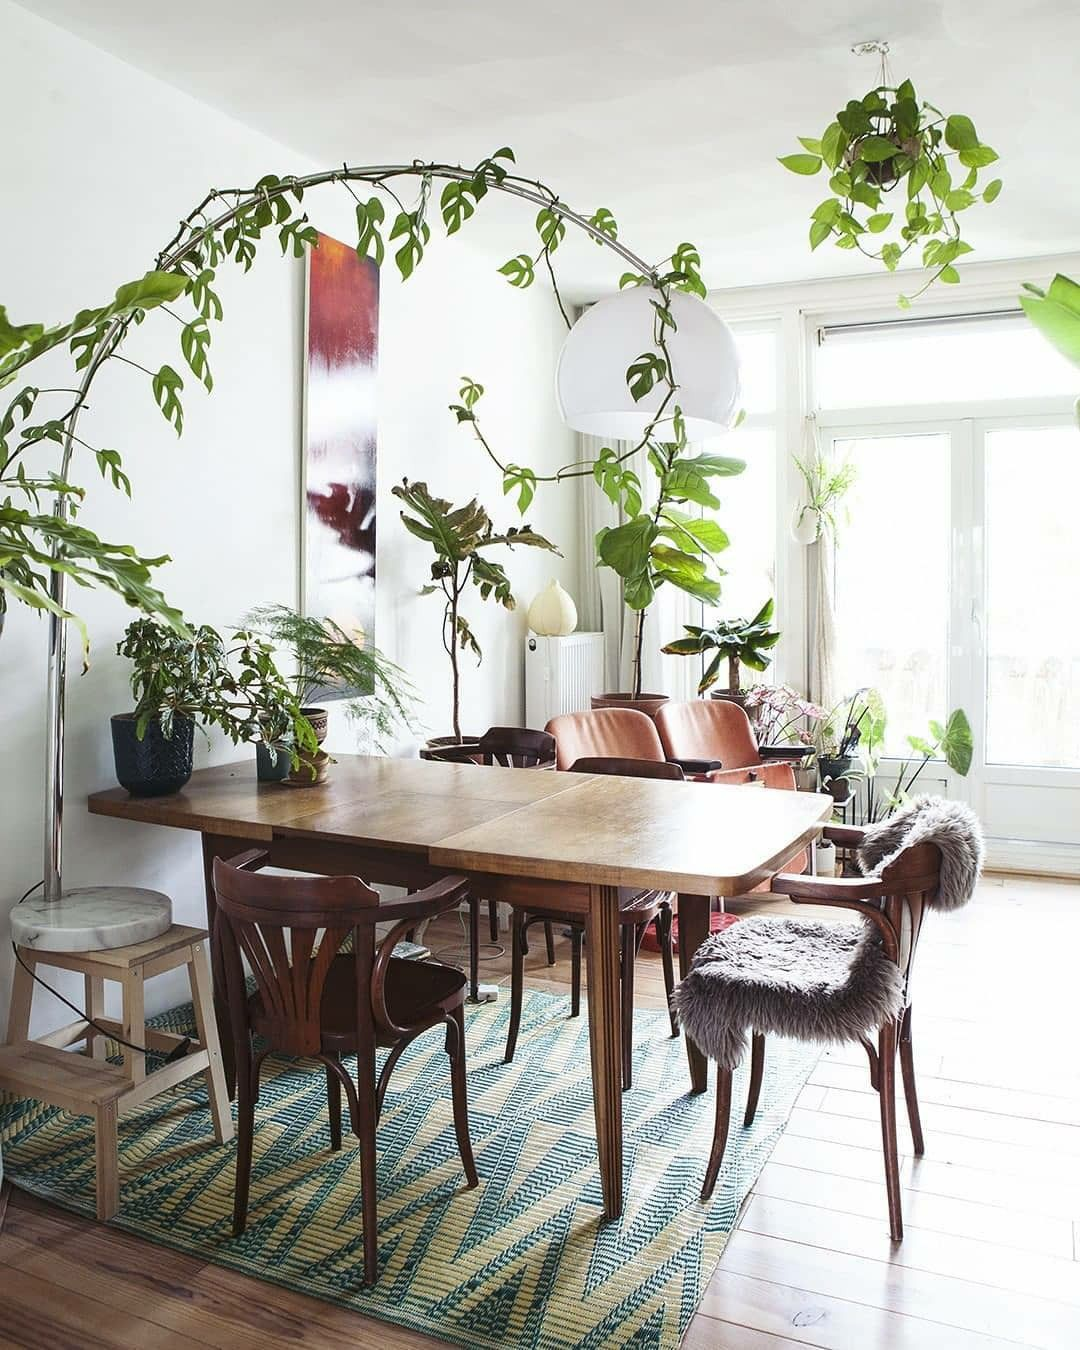 50 Creative Hanging Plants Ideas For Indoor In 2020 Best Indoor